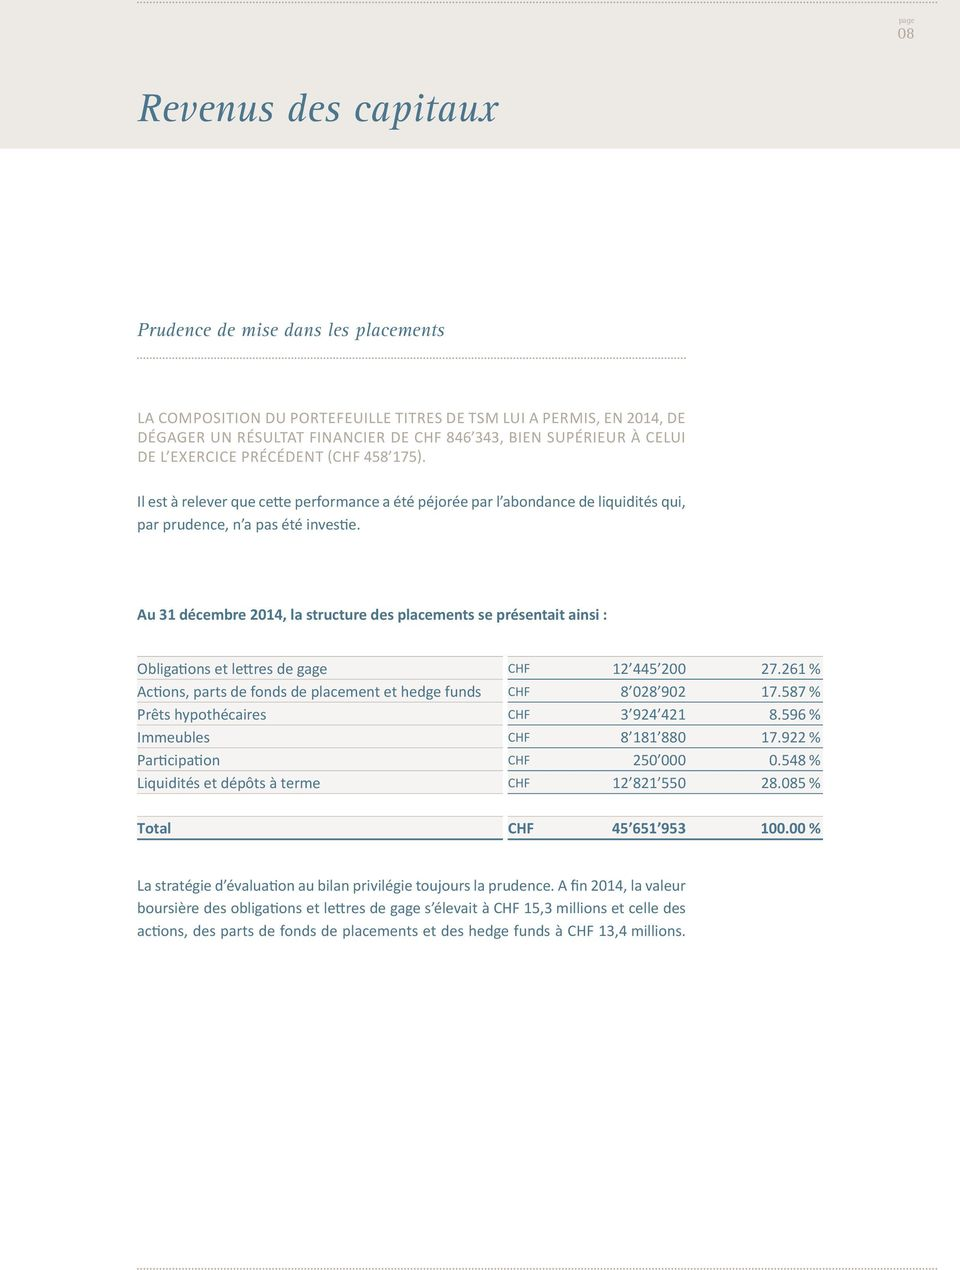 Au 31 décembre 2014, la structure des placements se présentait ainsi : Obliga ons et le res de gage CHF 12 445 200 27.261 % Ac ons, parts de fonds de placement et hedge funds CHF 8 028 902 17.